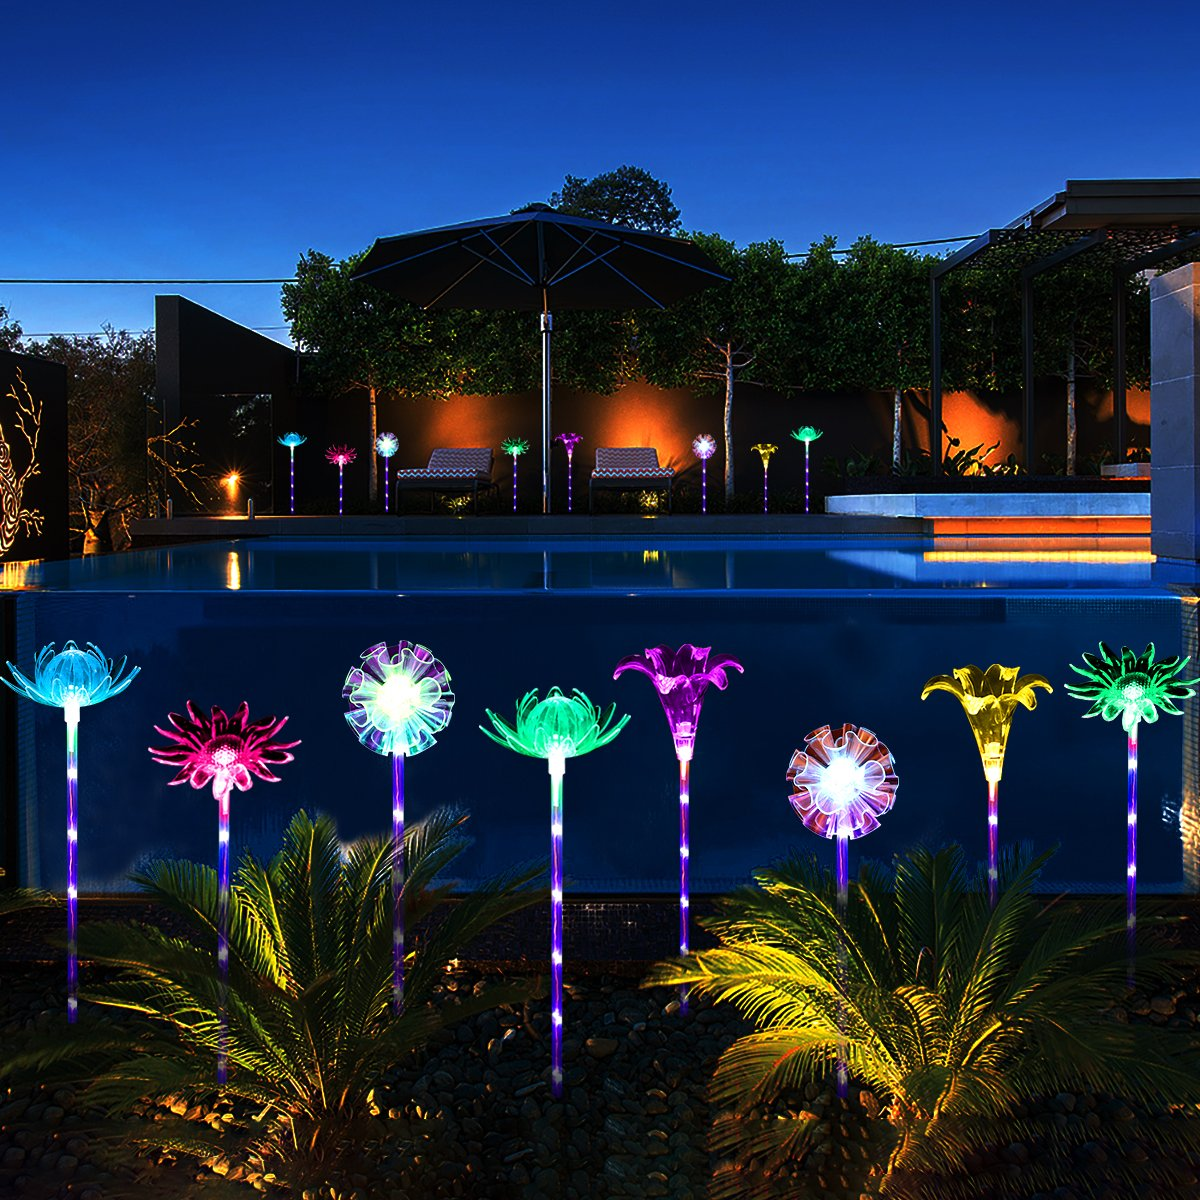 YUNLIGHTS 4pcs Solar Garden Lights Outdoor Garden Stake Lights Multi-Color Changing LED Solar Lights with Purple LED Light Stake for Garden Patio Backyard Decoration (Lotus,Dandelion,Lily,Sunflower) by YUNLIGHTS (Image #3)